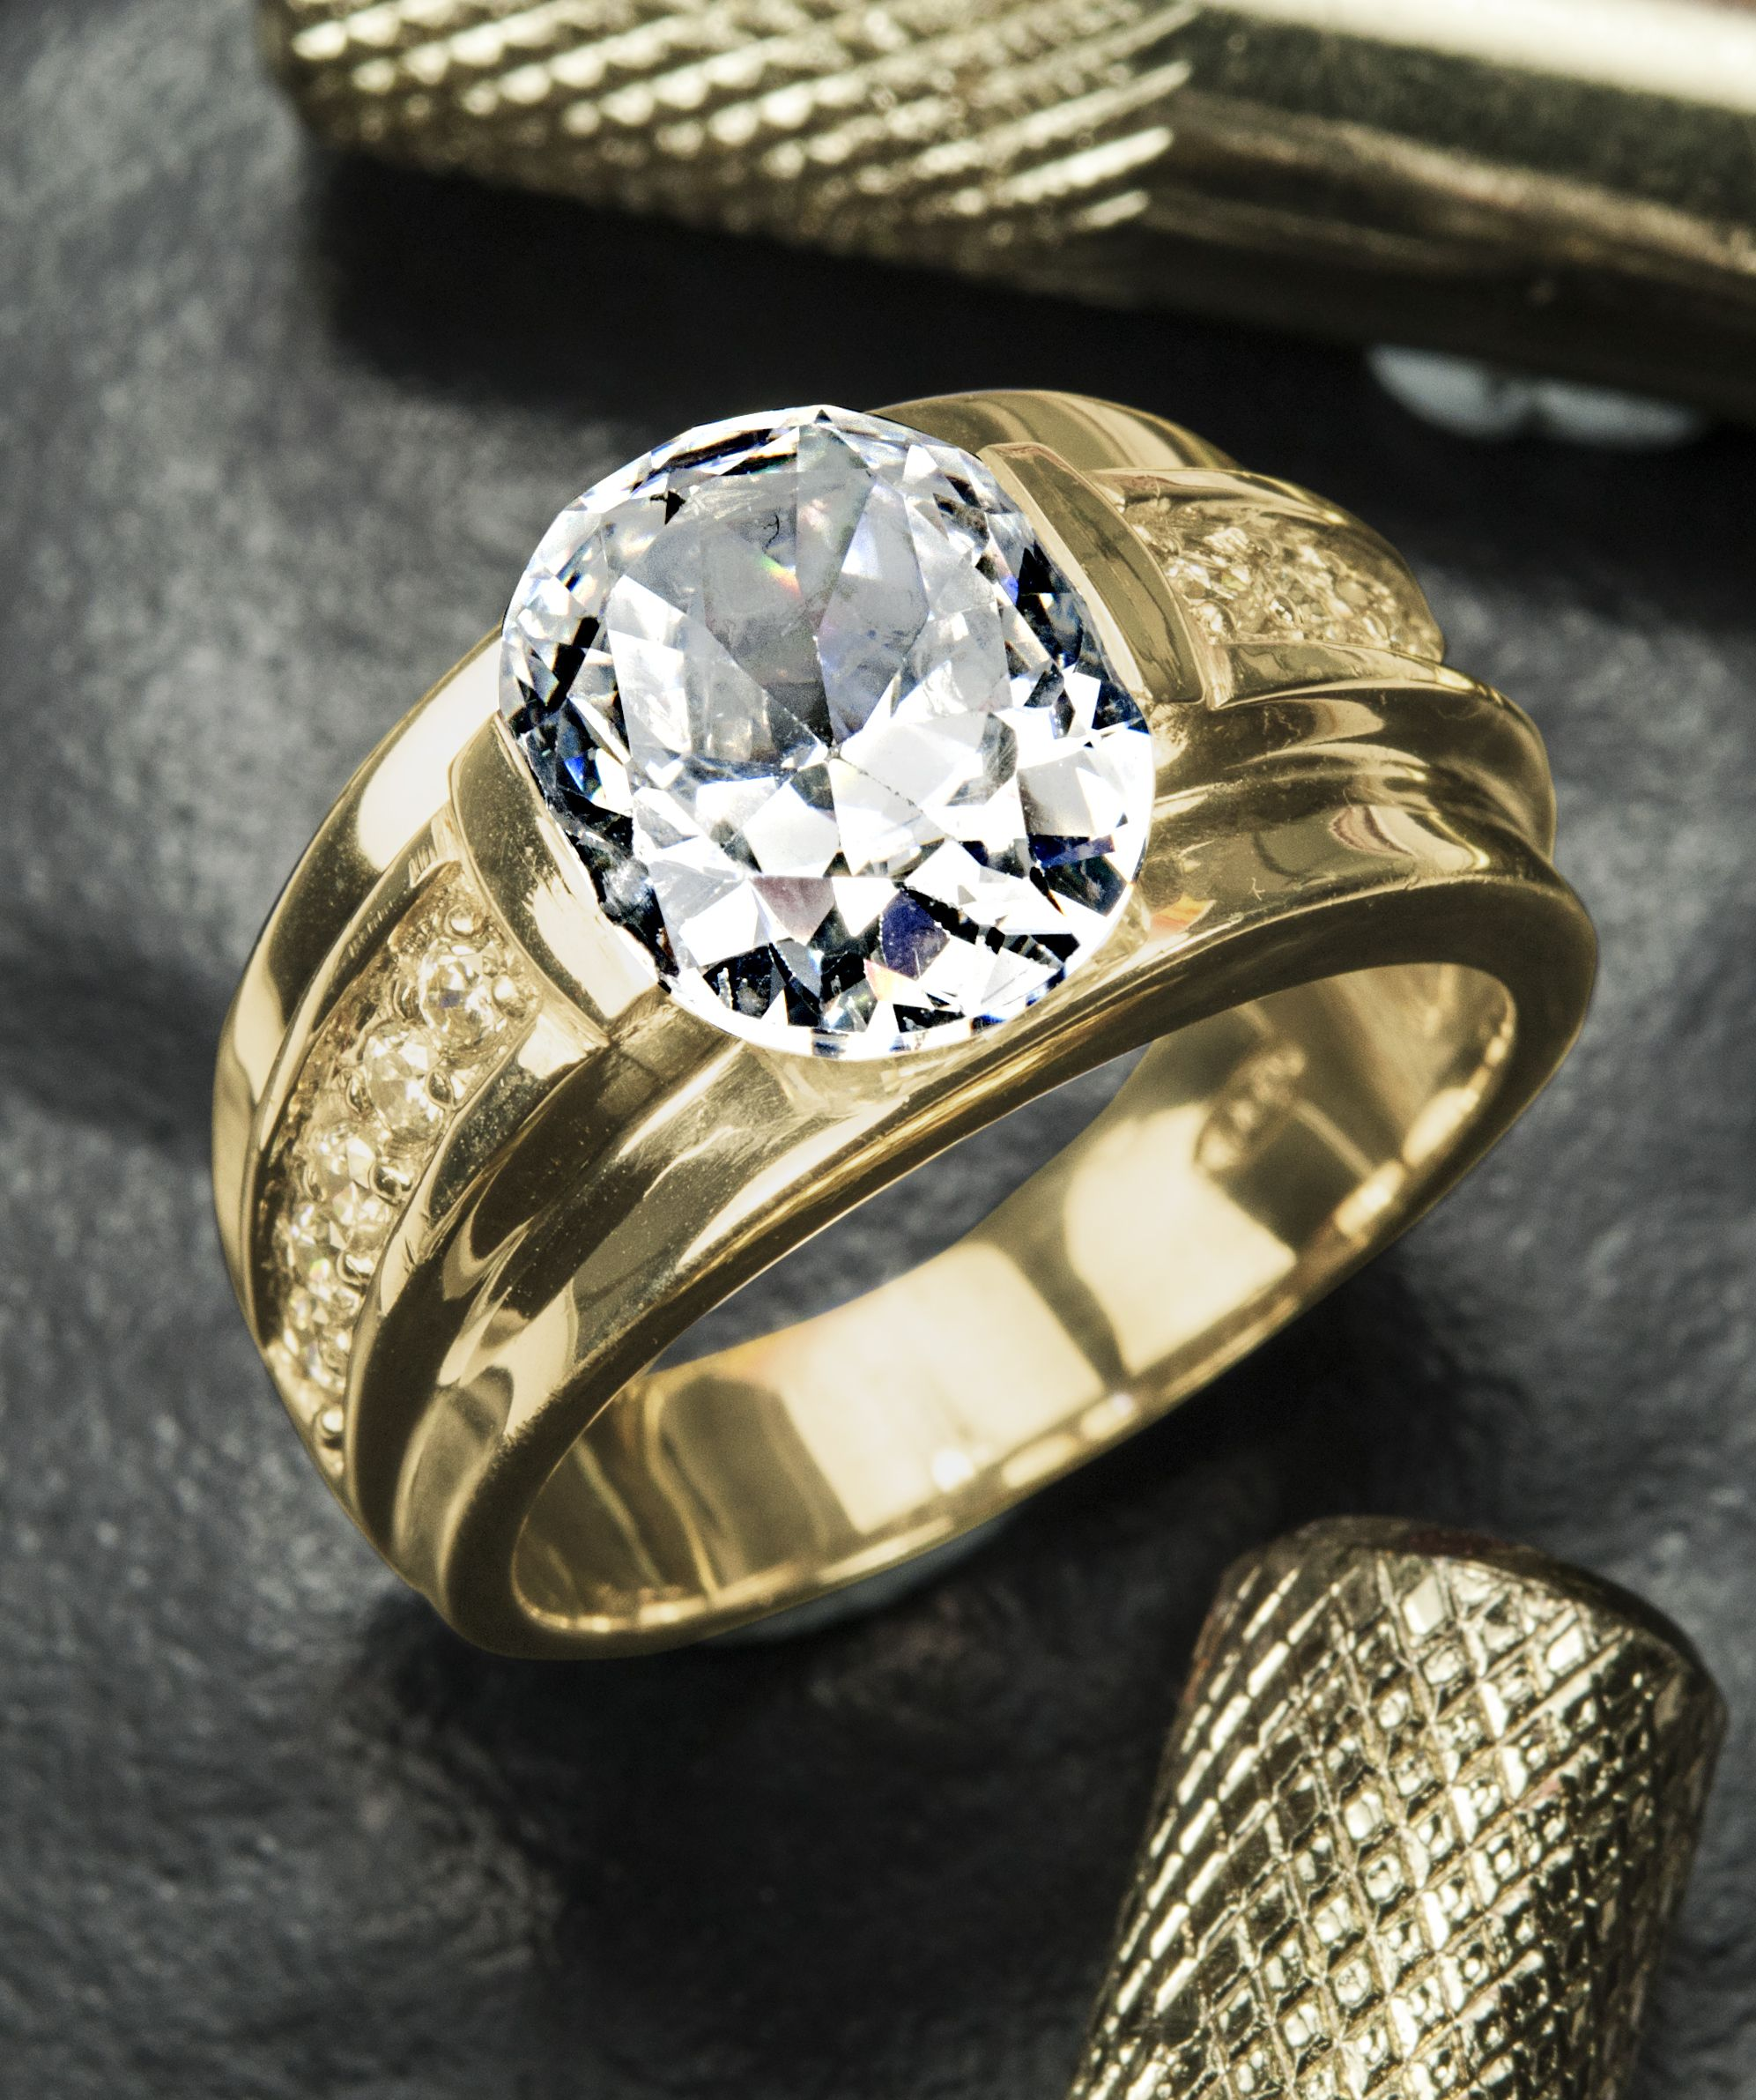 Halcyon Ring 169 Luxury rings, Jewelry rings